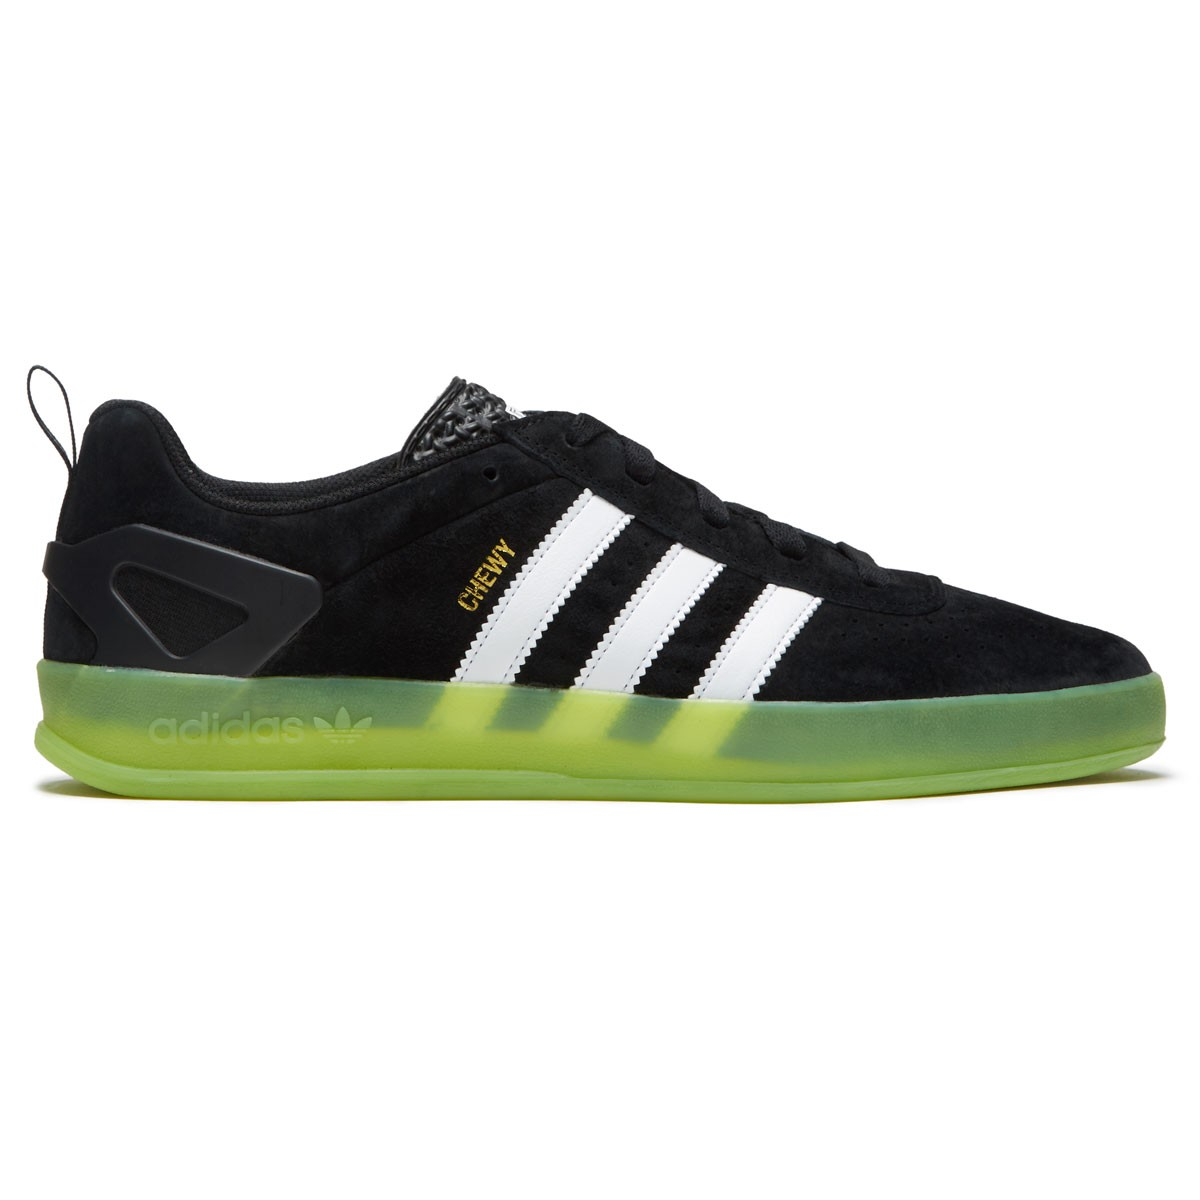 070c99d9742f Adidas X Palace Pro Chewy Shoes - Black White Solar Green - 10.0